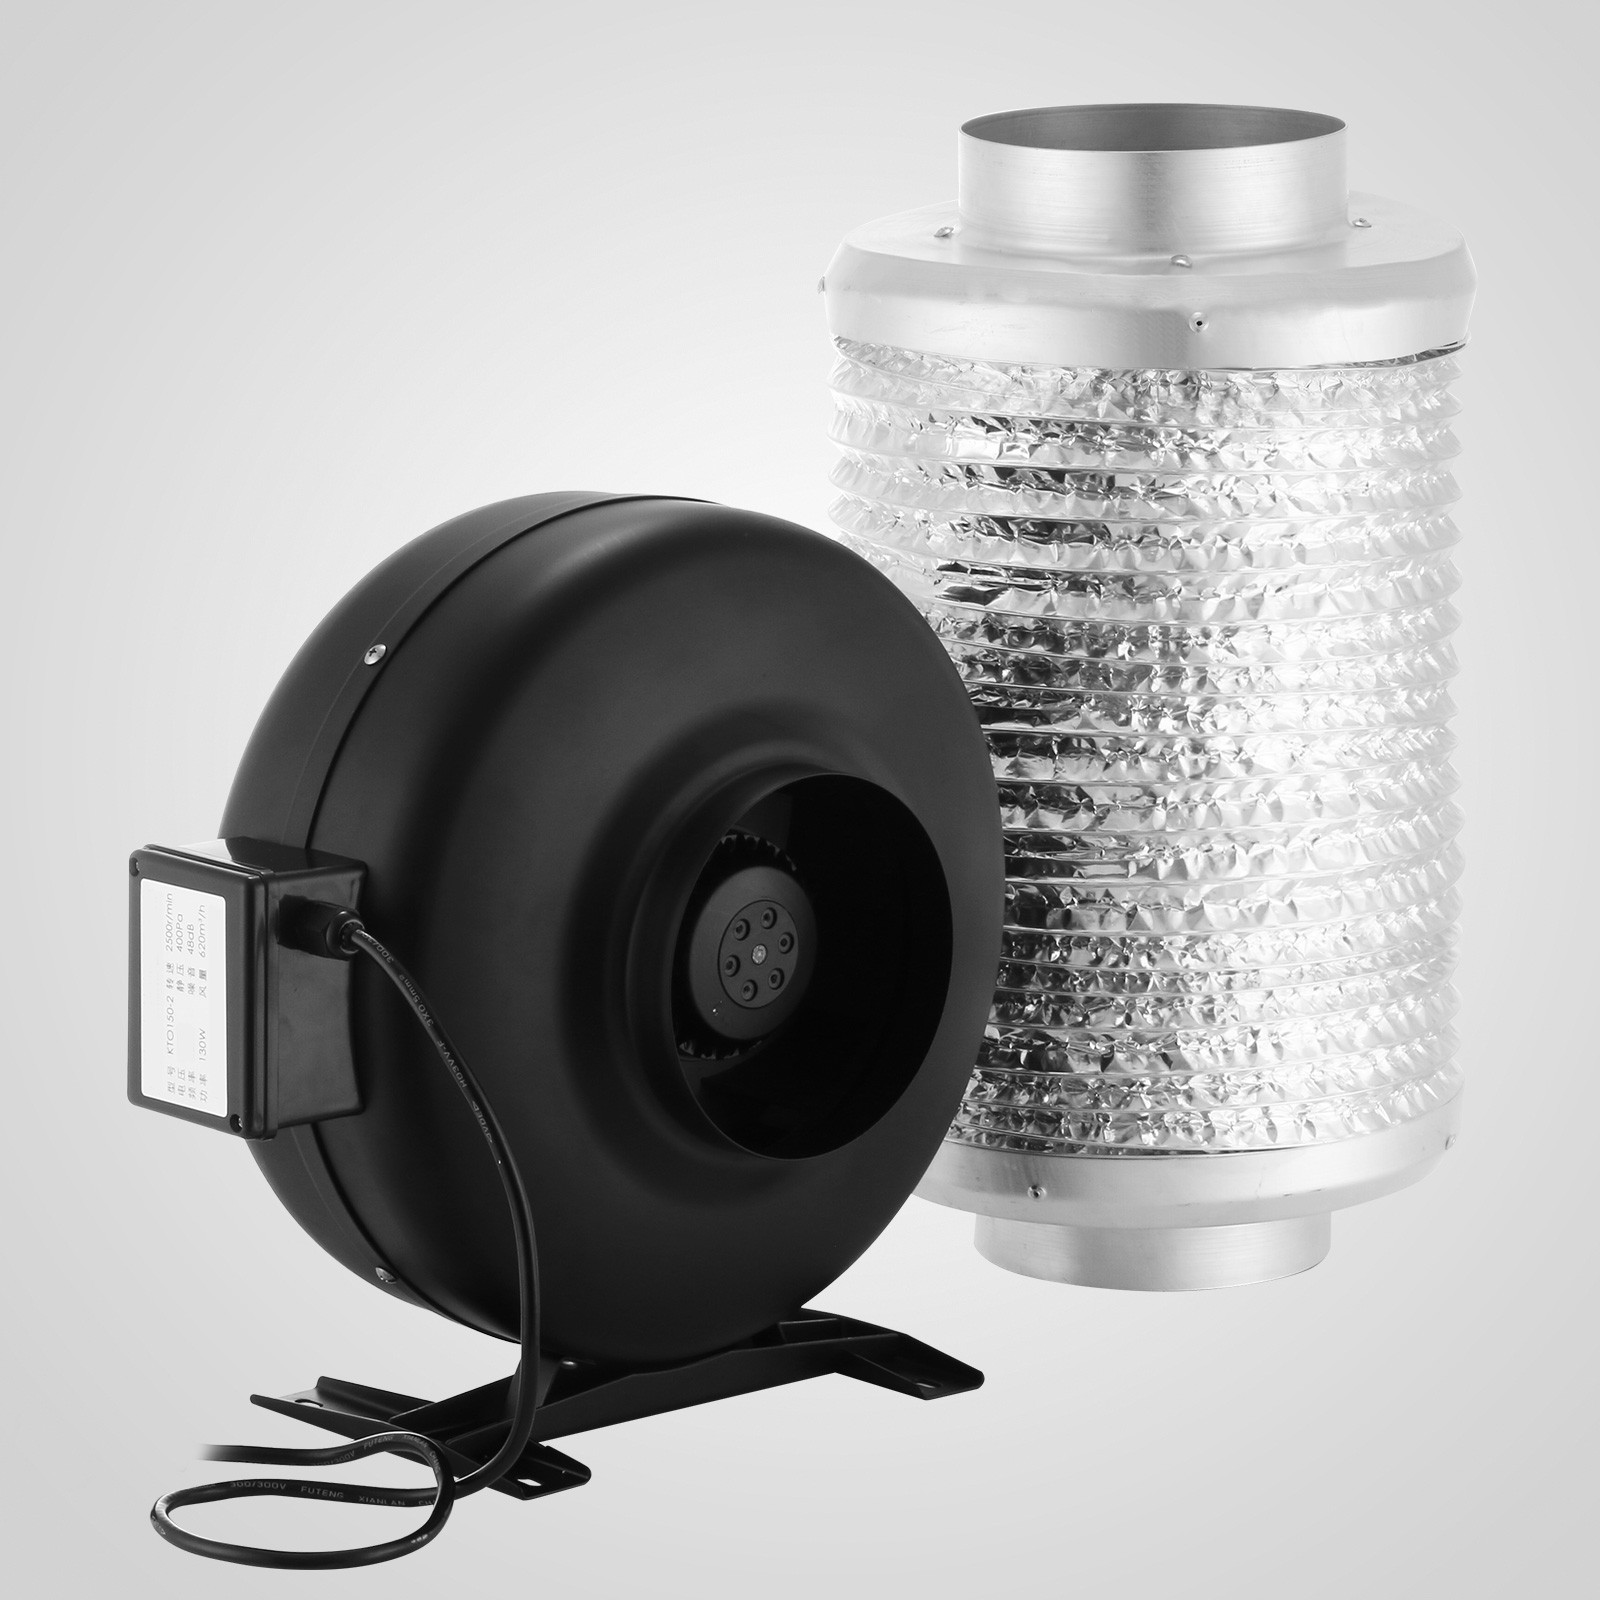 Air Duct Blower Fan : Duct fan air blower carbon filter inline vent moisture